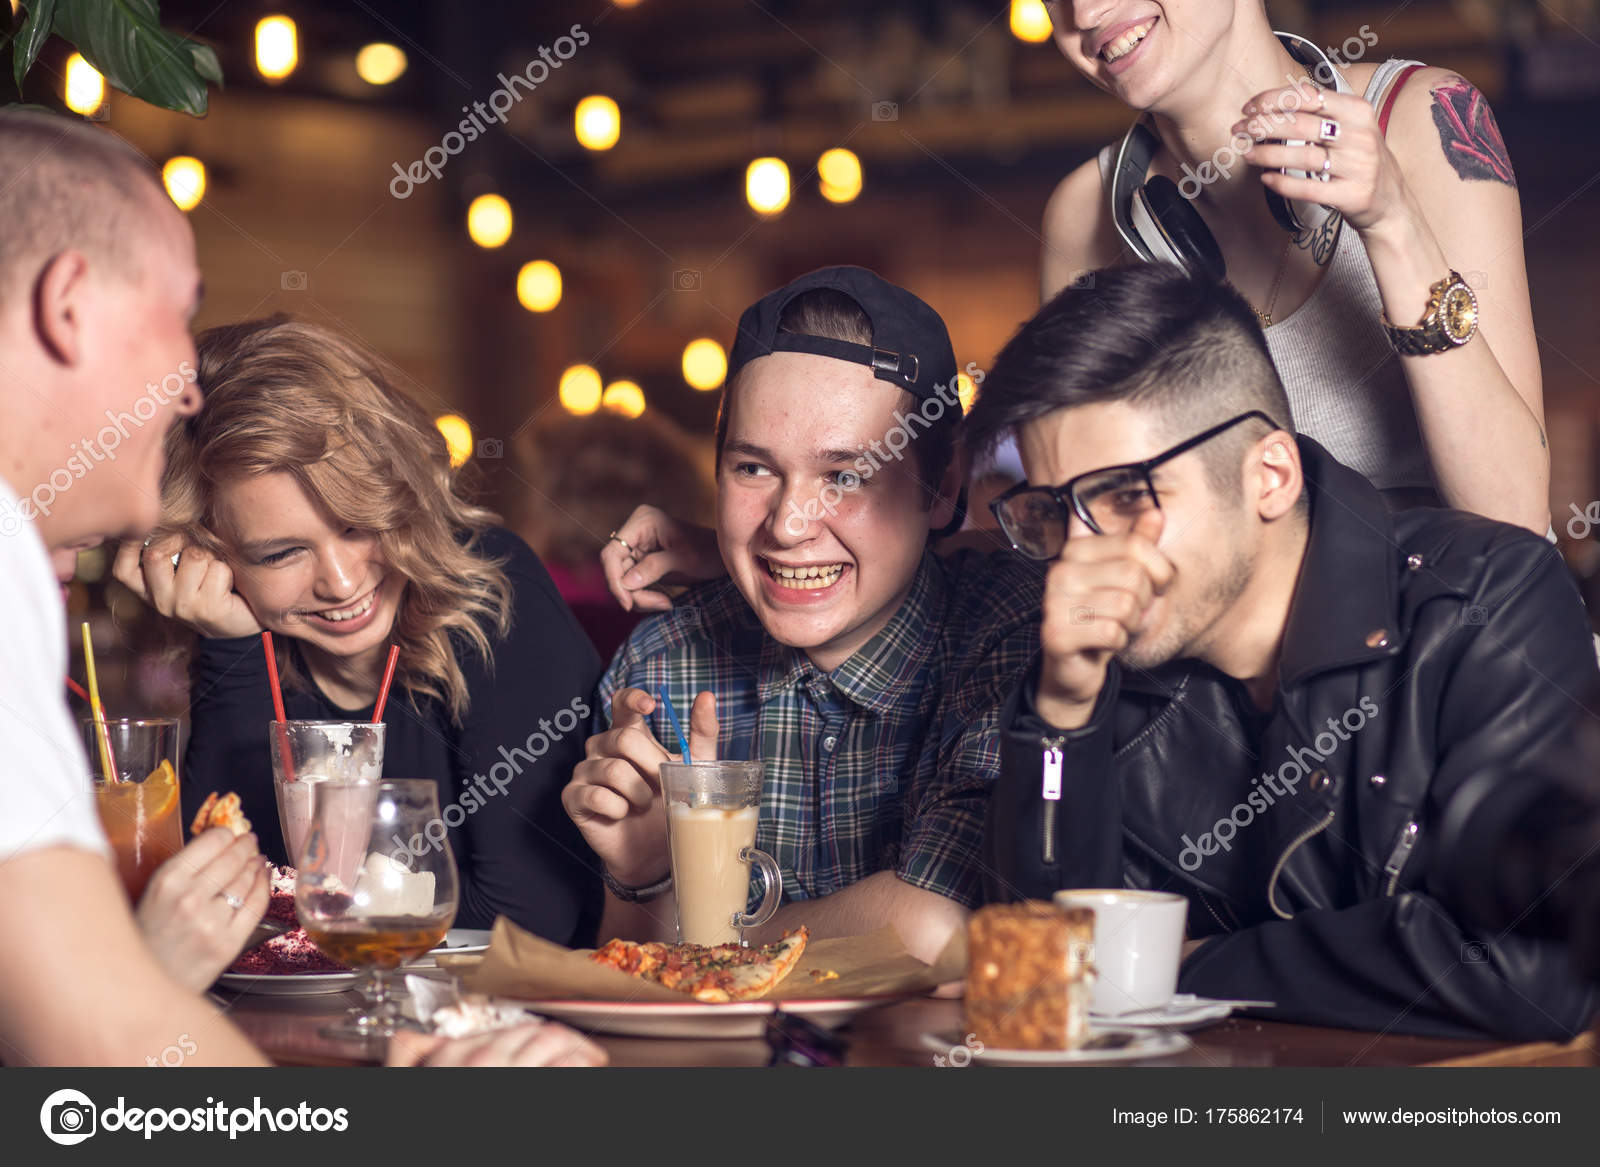 People Drinking Coffee In Cafe Concept Stock Photo C Ufabizphoto 175862174